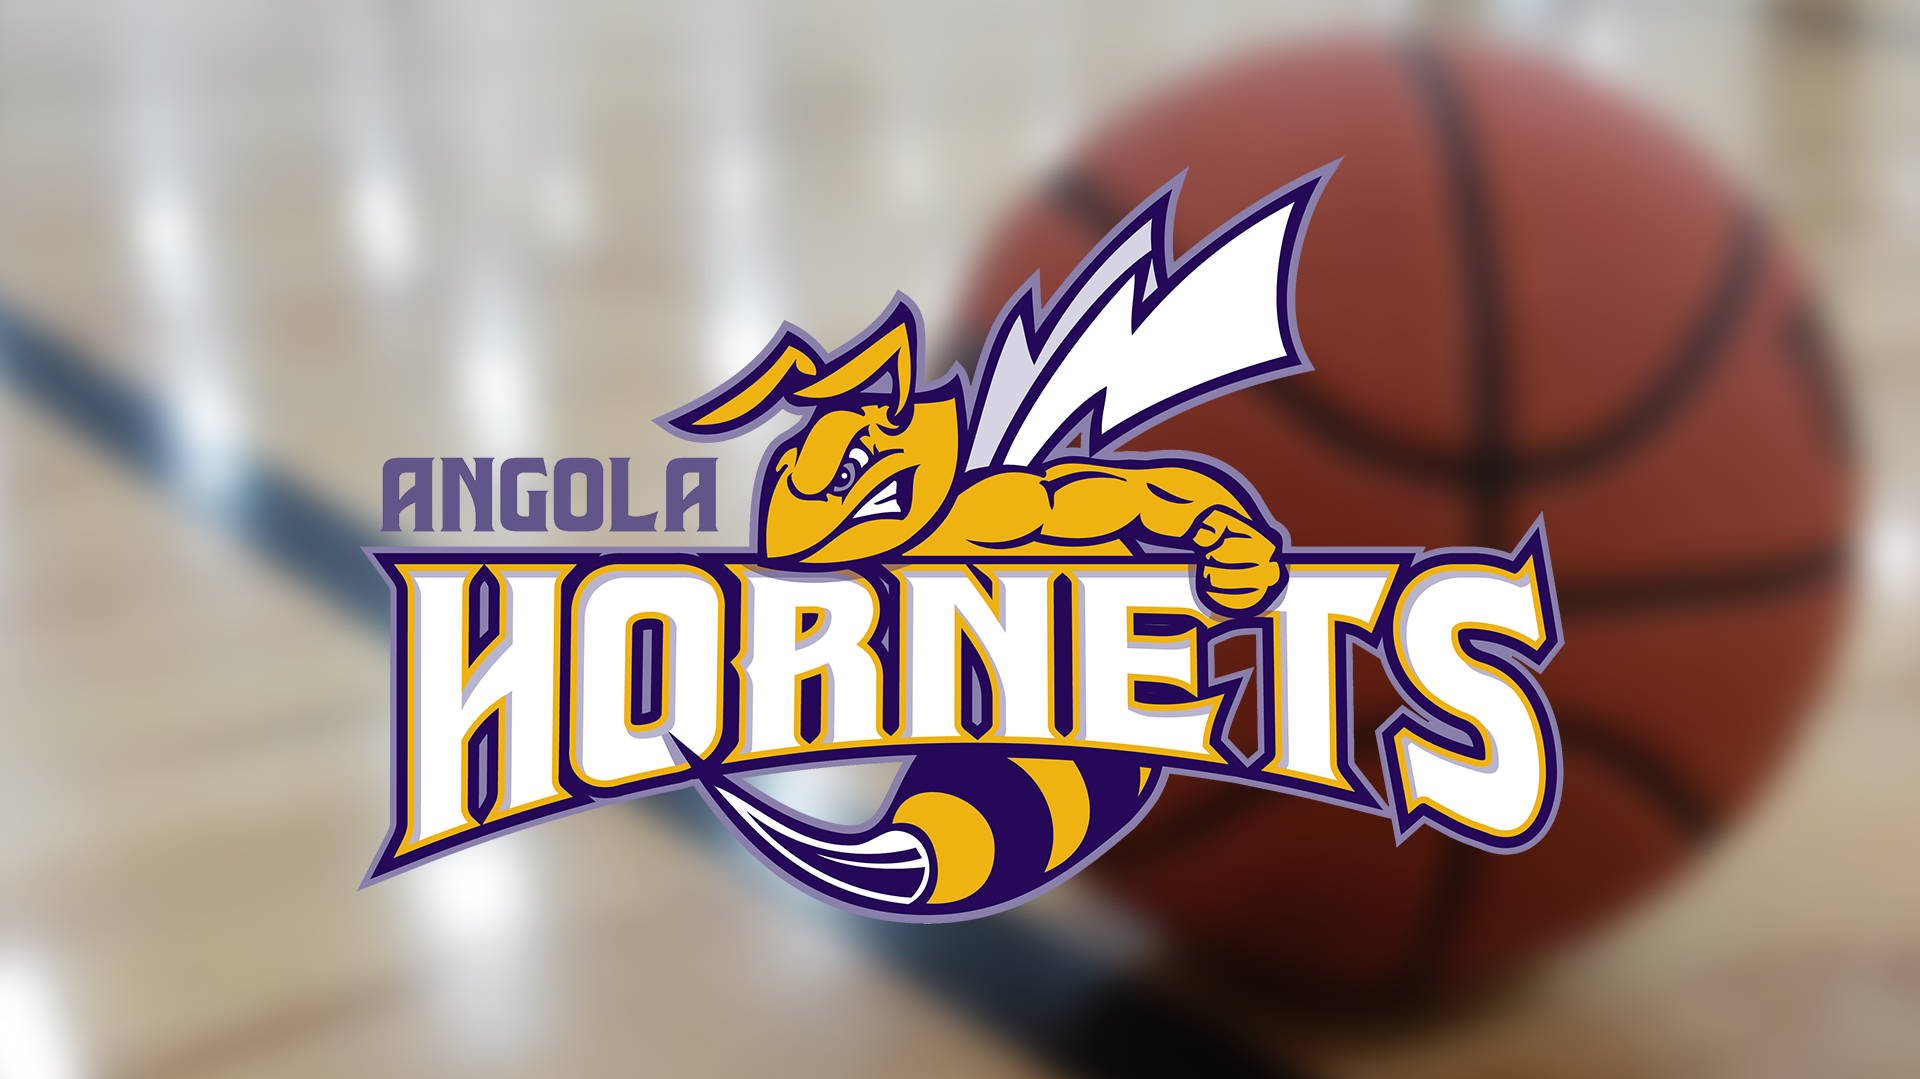 2019-20 Boys Basketball Preview: Angola Hornets